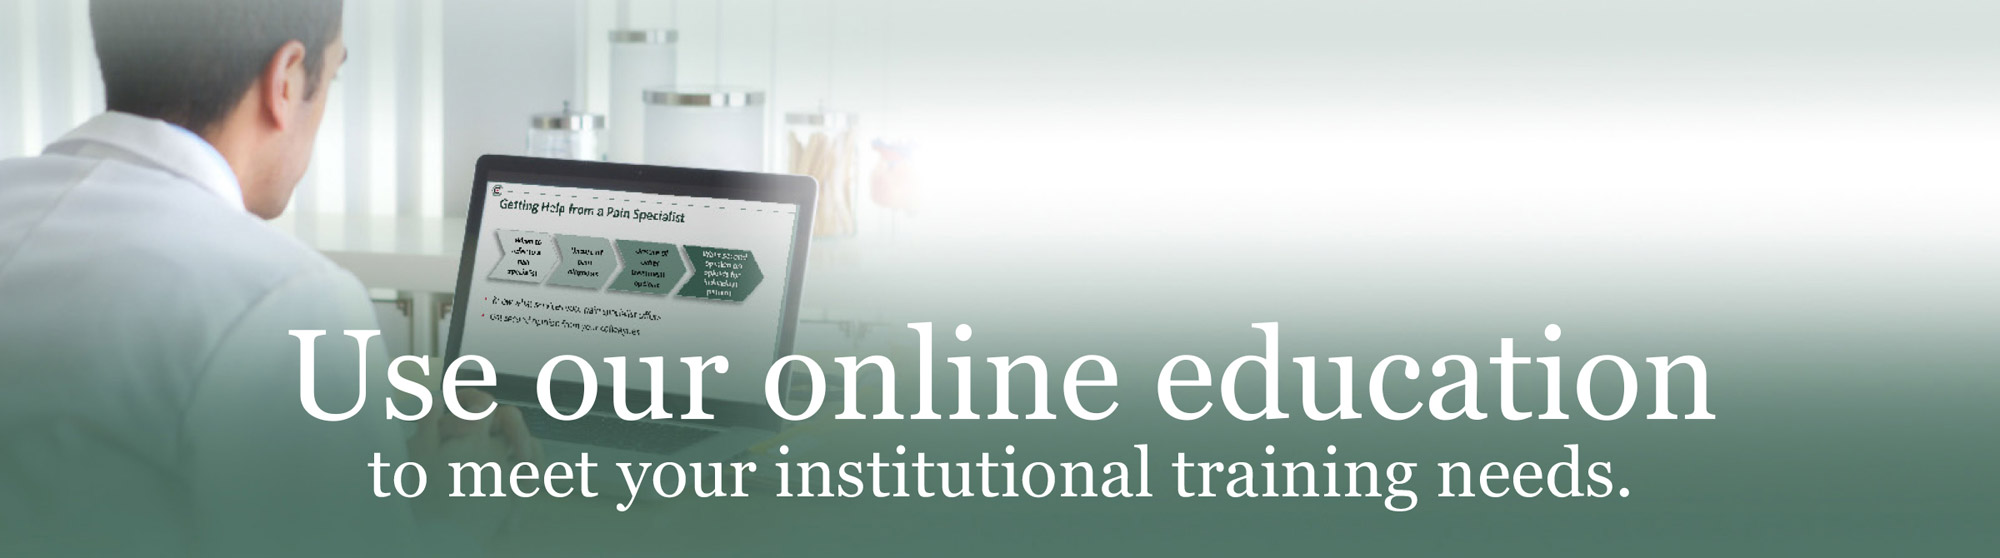 Use our online education to meet your institutional training needs